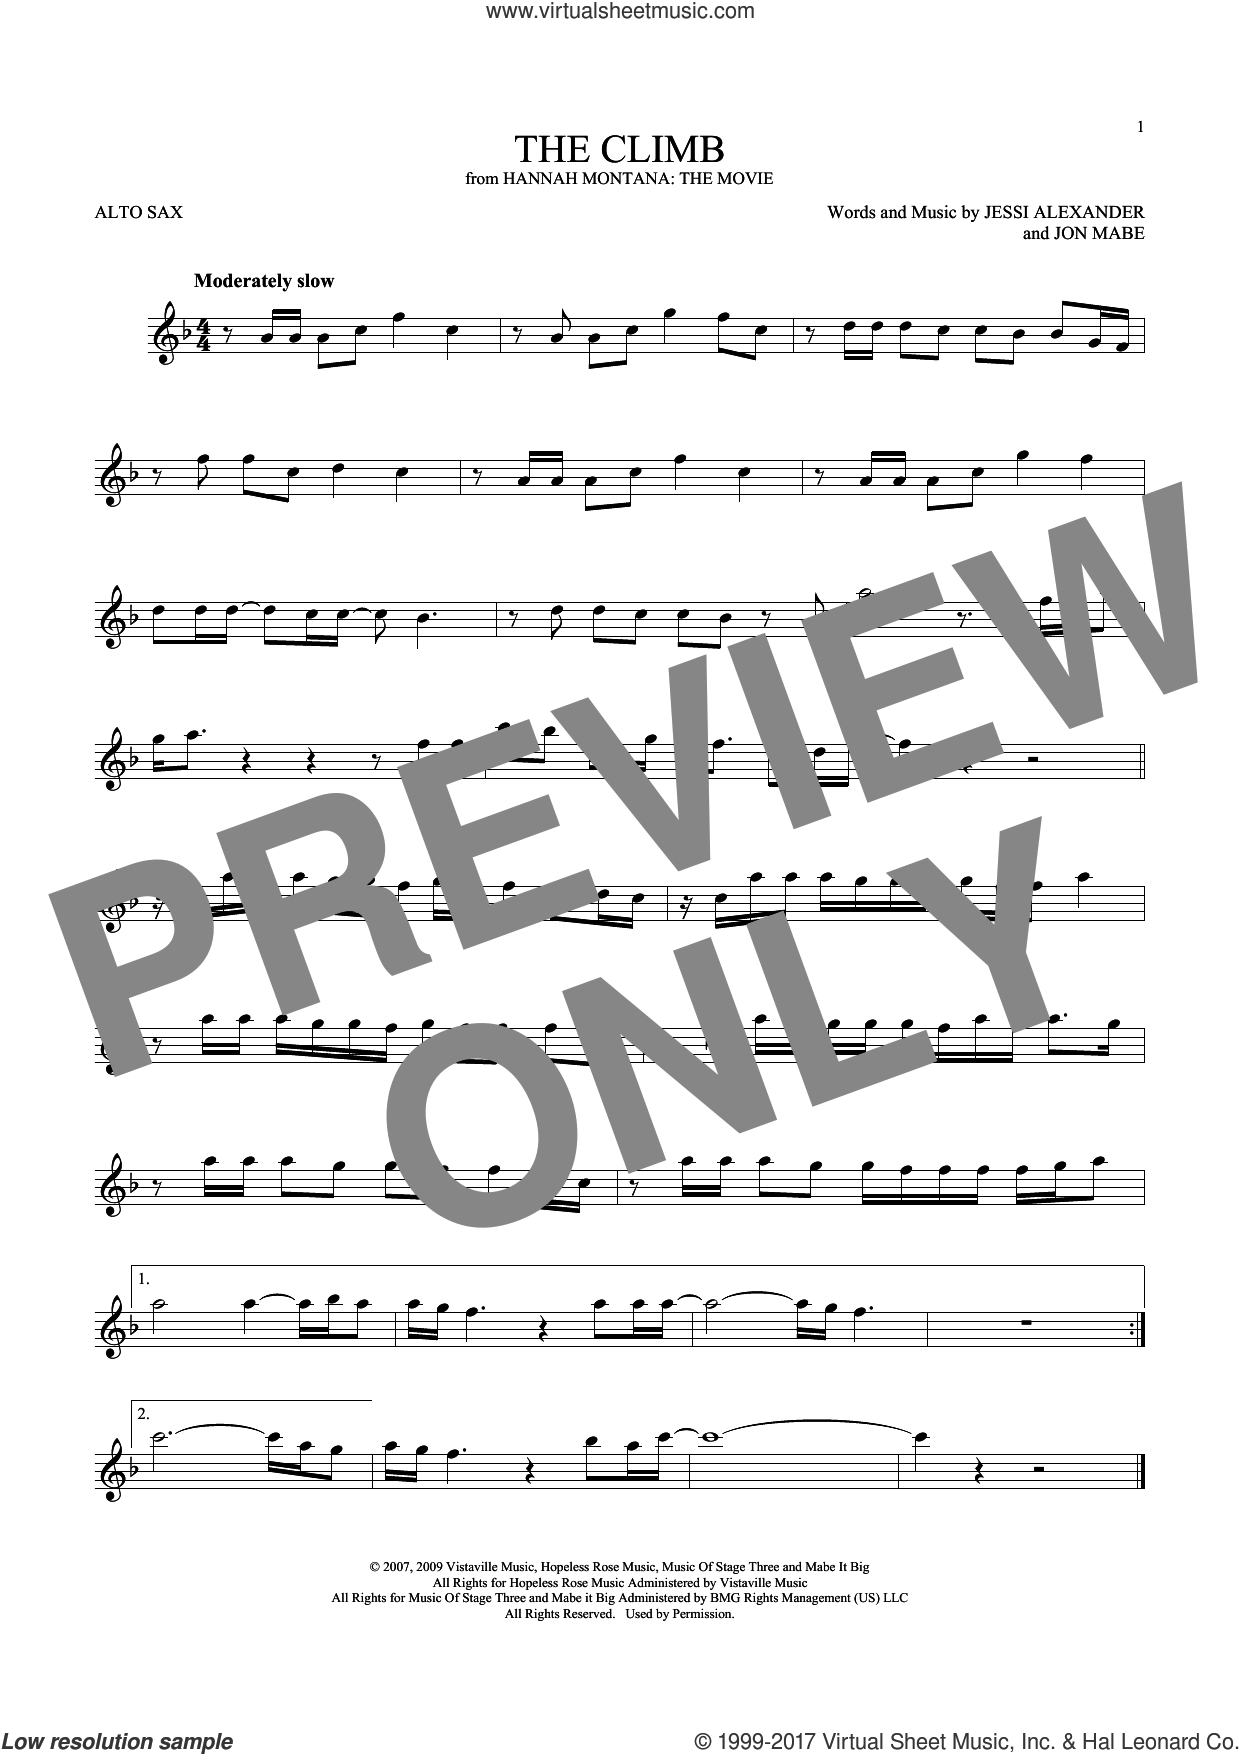 The Climb sheet music for alto saxophone solo by Miley Cyrus, Jessi Alexander and Jon Mabe, intermediate skill level